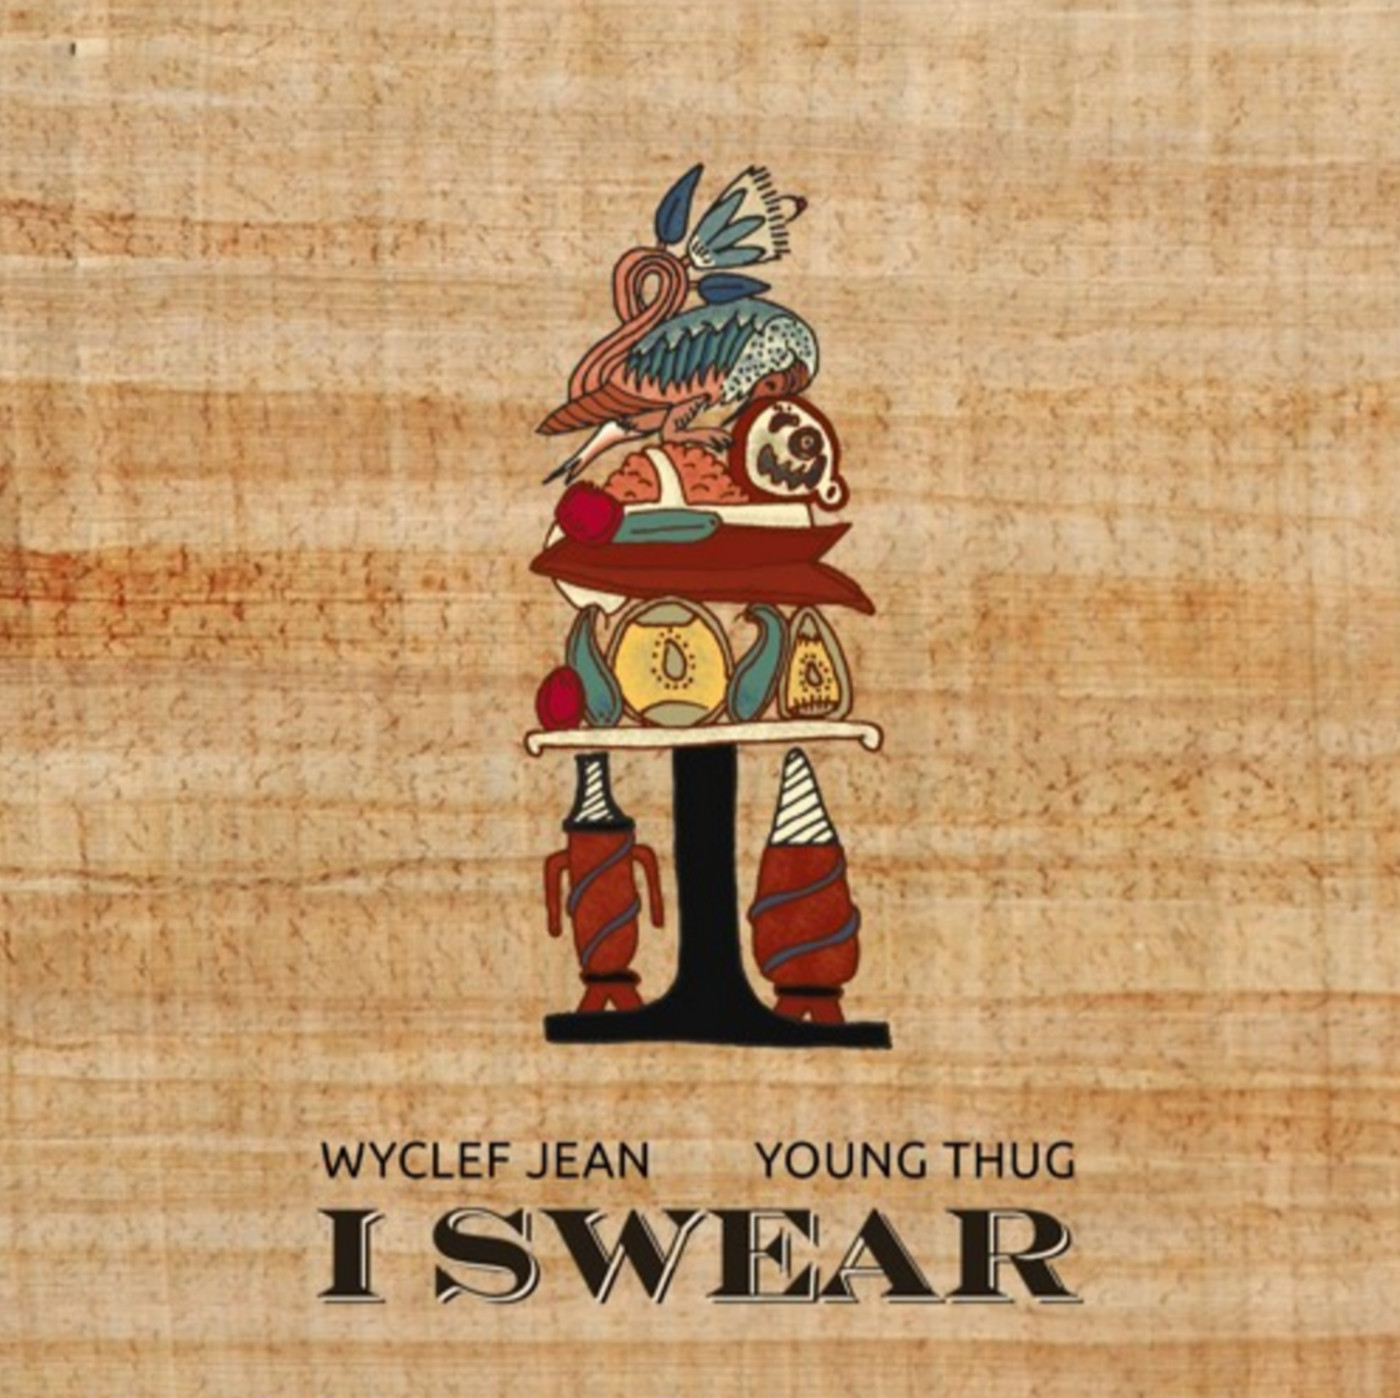 Young Thug and Wyclef Jean